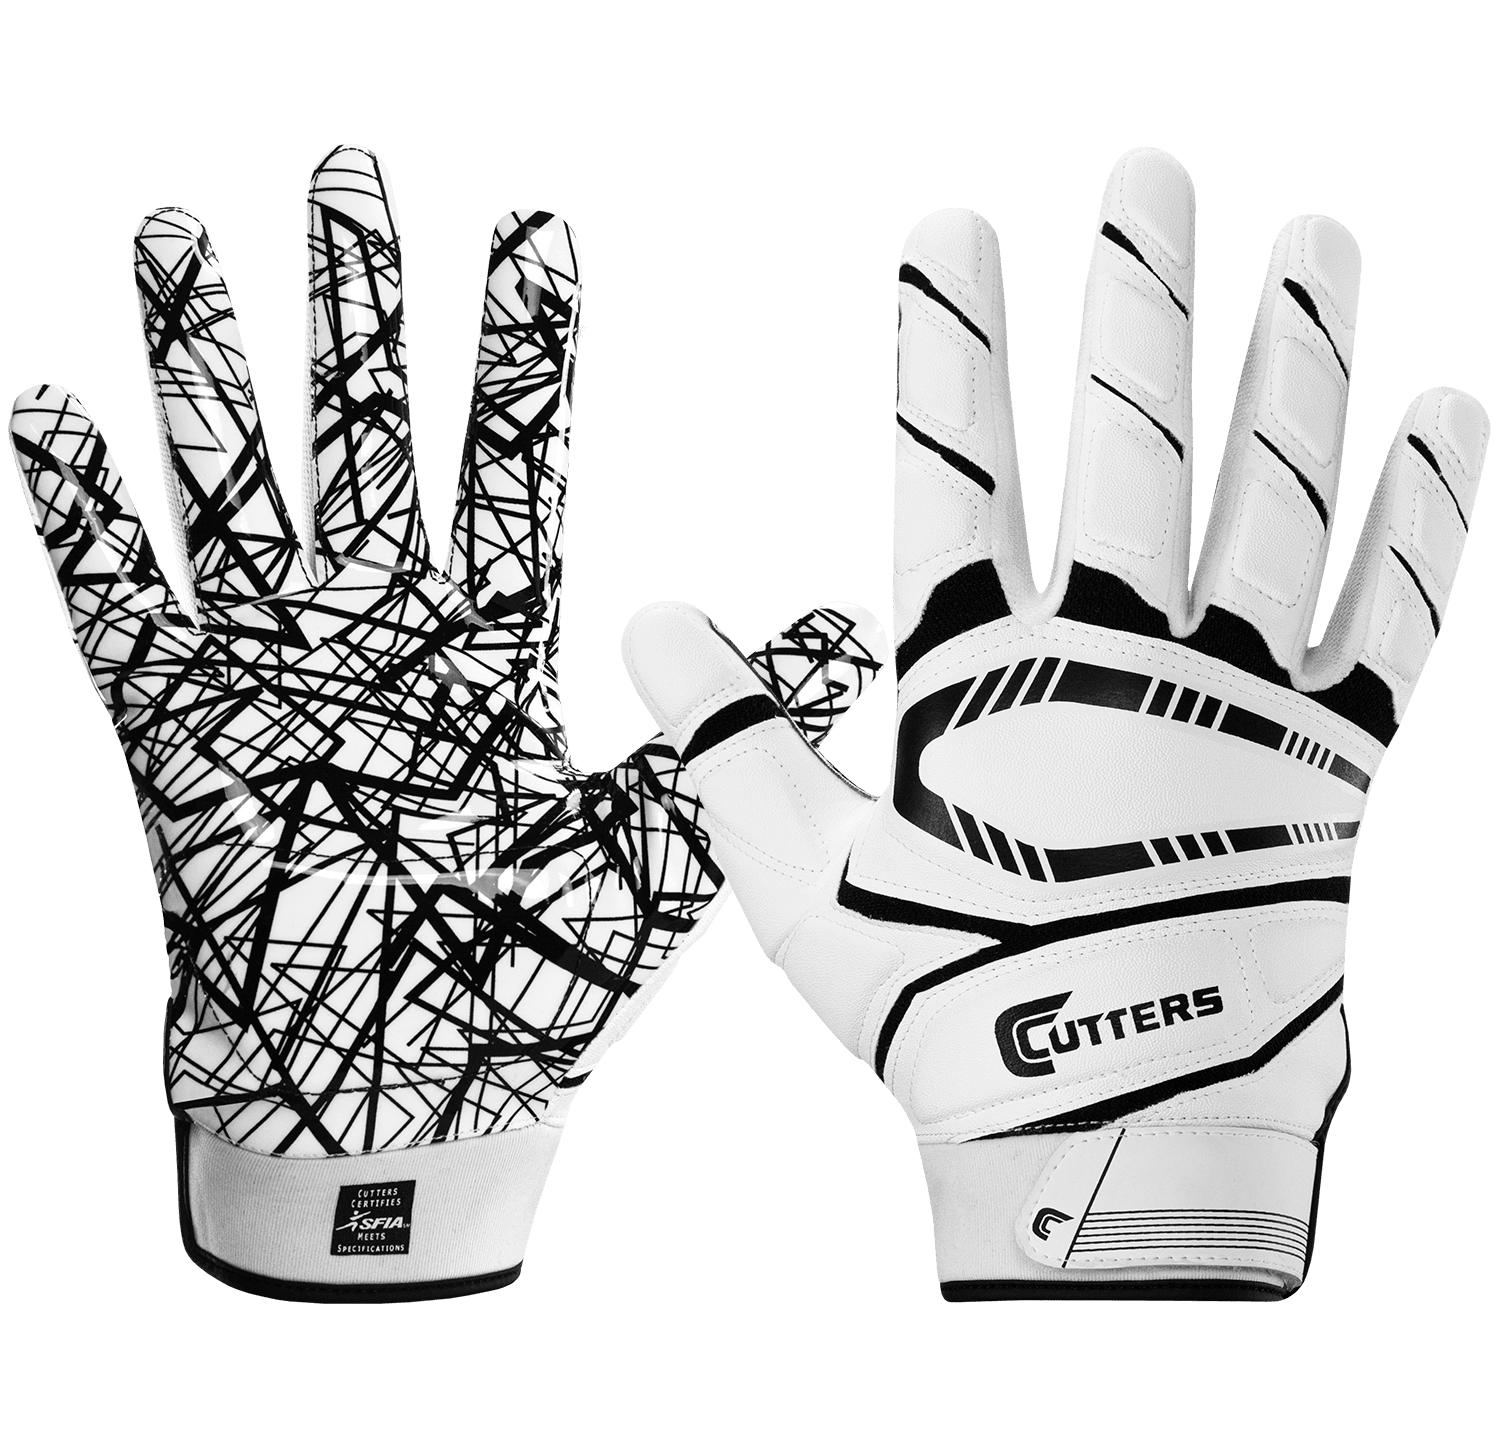 Cutters Game Day Adult Padded Football Gloves - League Outfitters